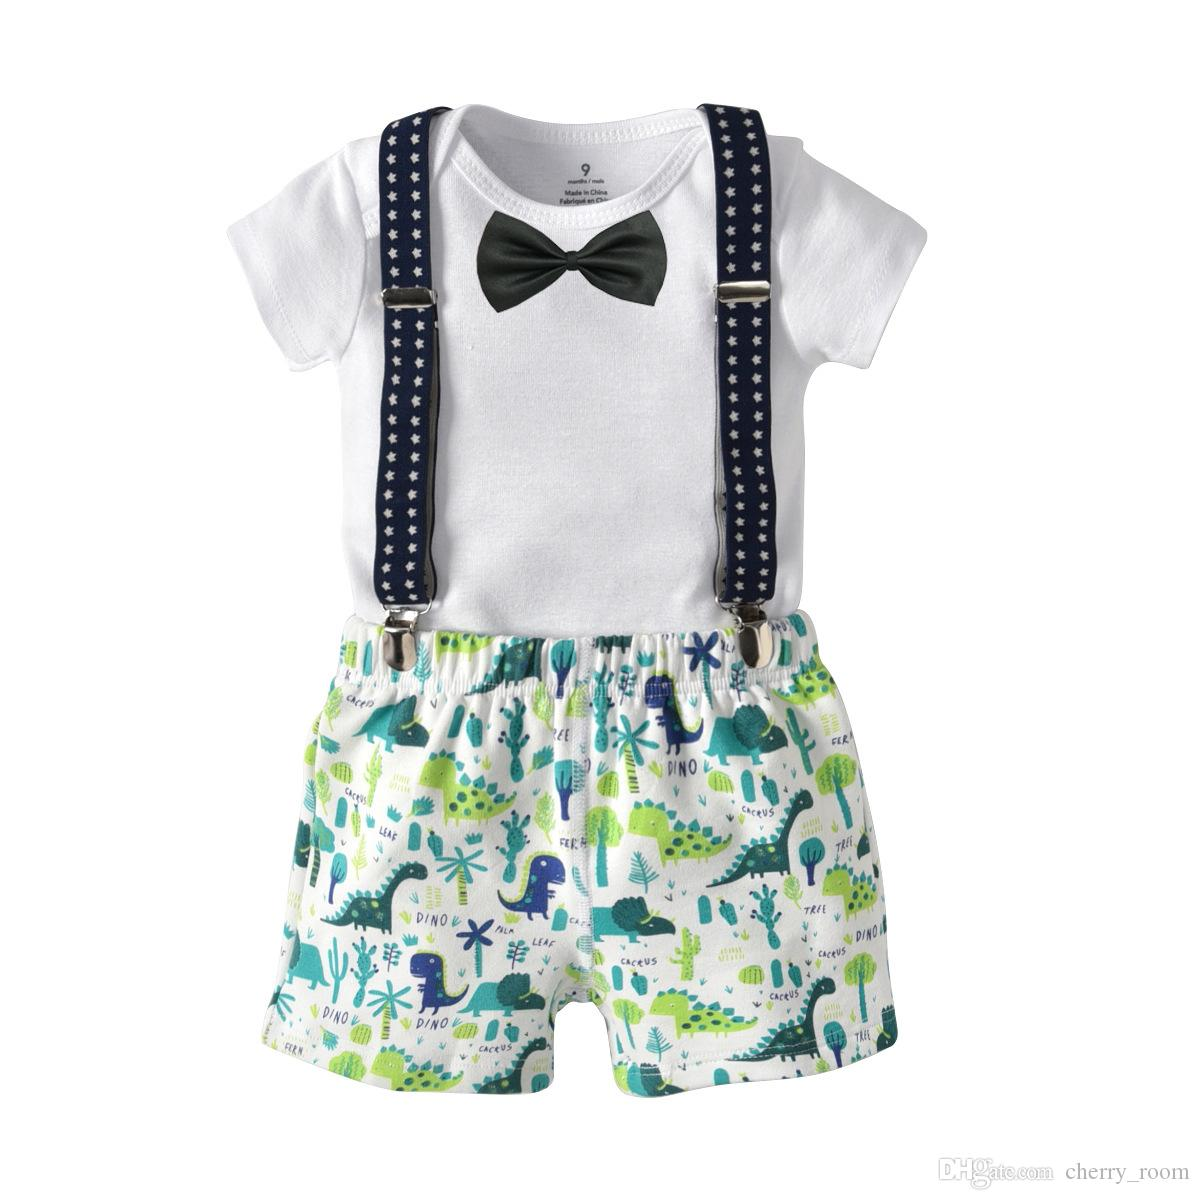 8eb7330d9501 Cartoon Baby Boys Outfits 2018 New Summer Gentleman Toddler Clothes Sets  Romper + Dinosaur Shorts + suspenders + bow tie 4pcs Suits C3412